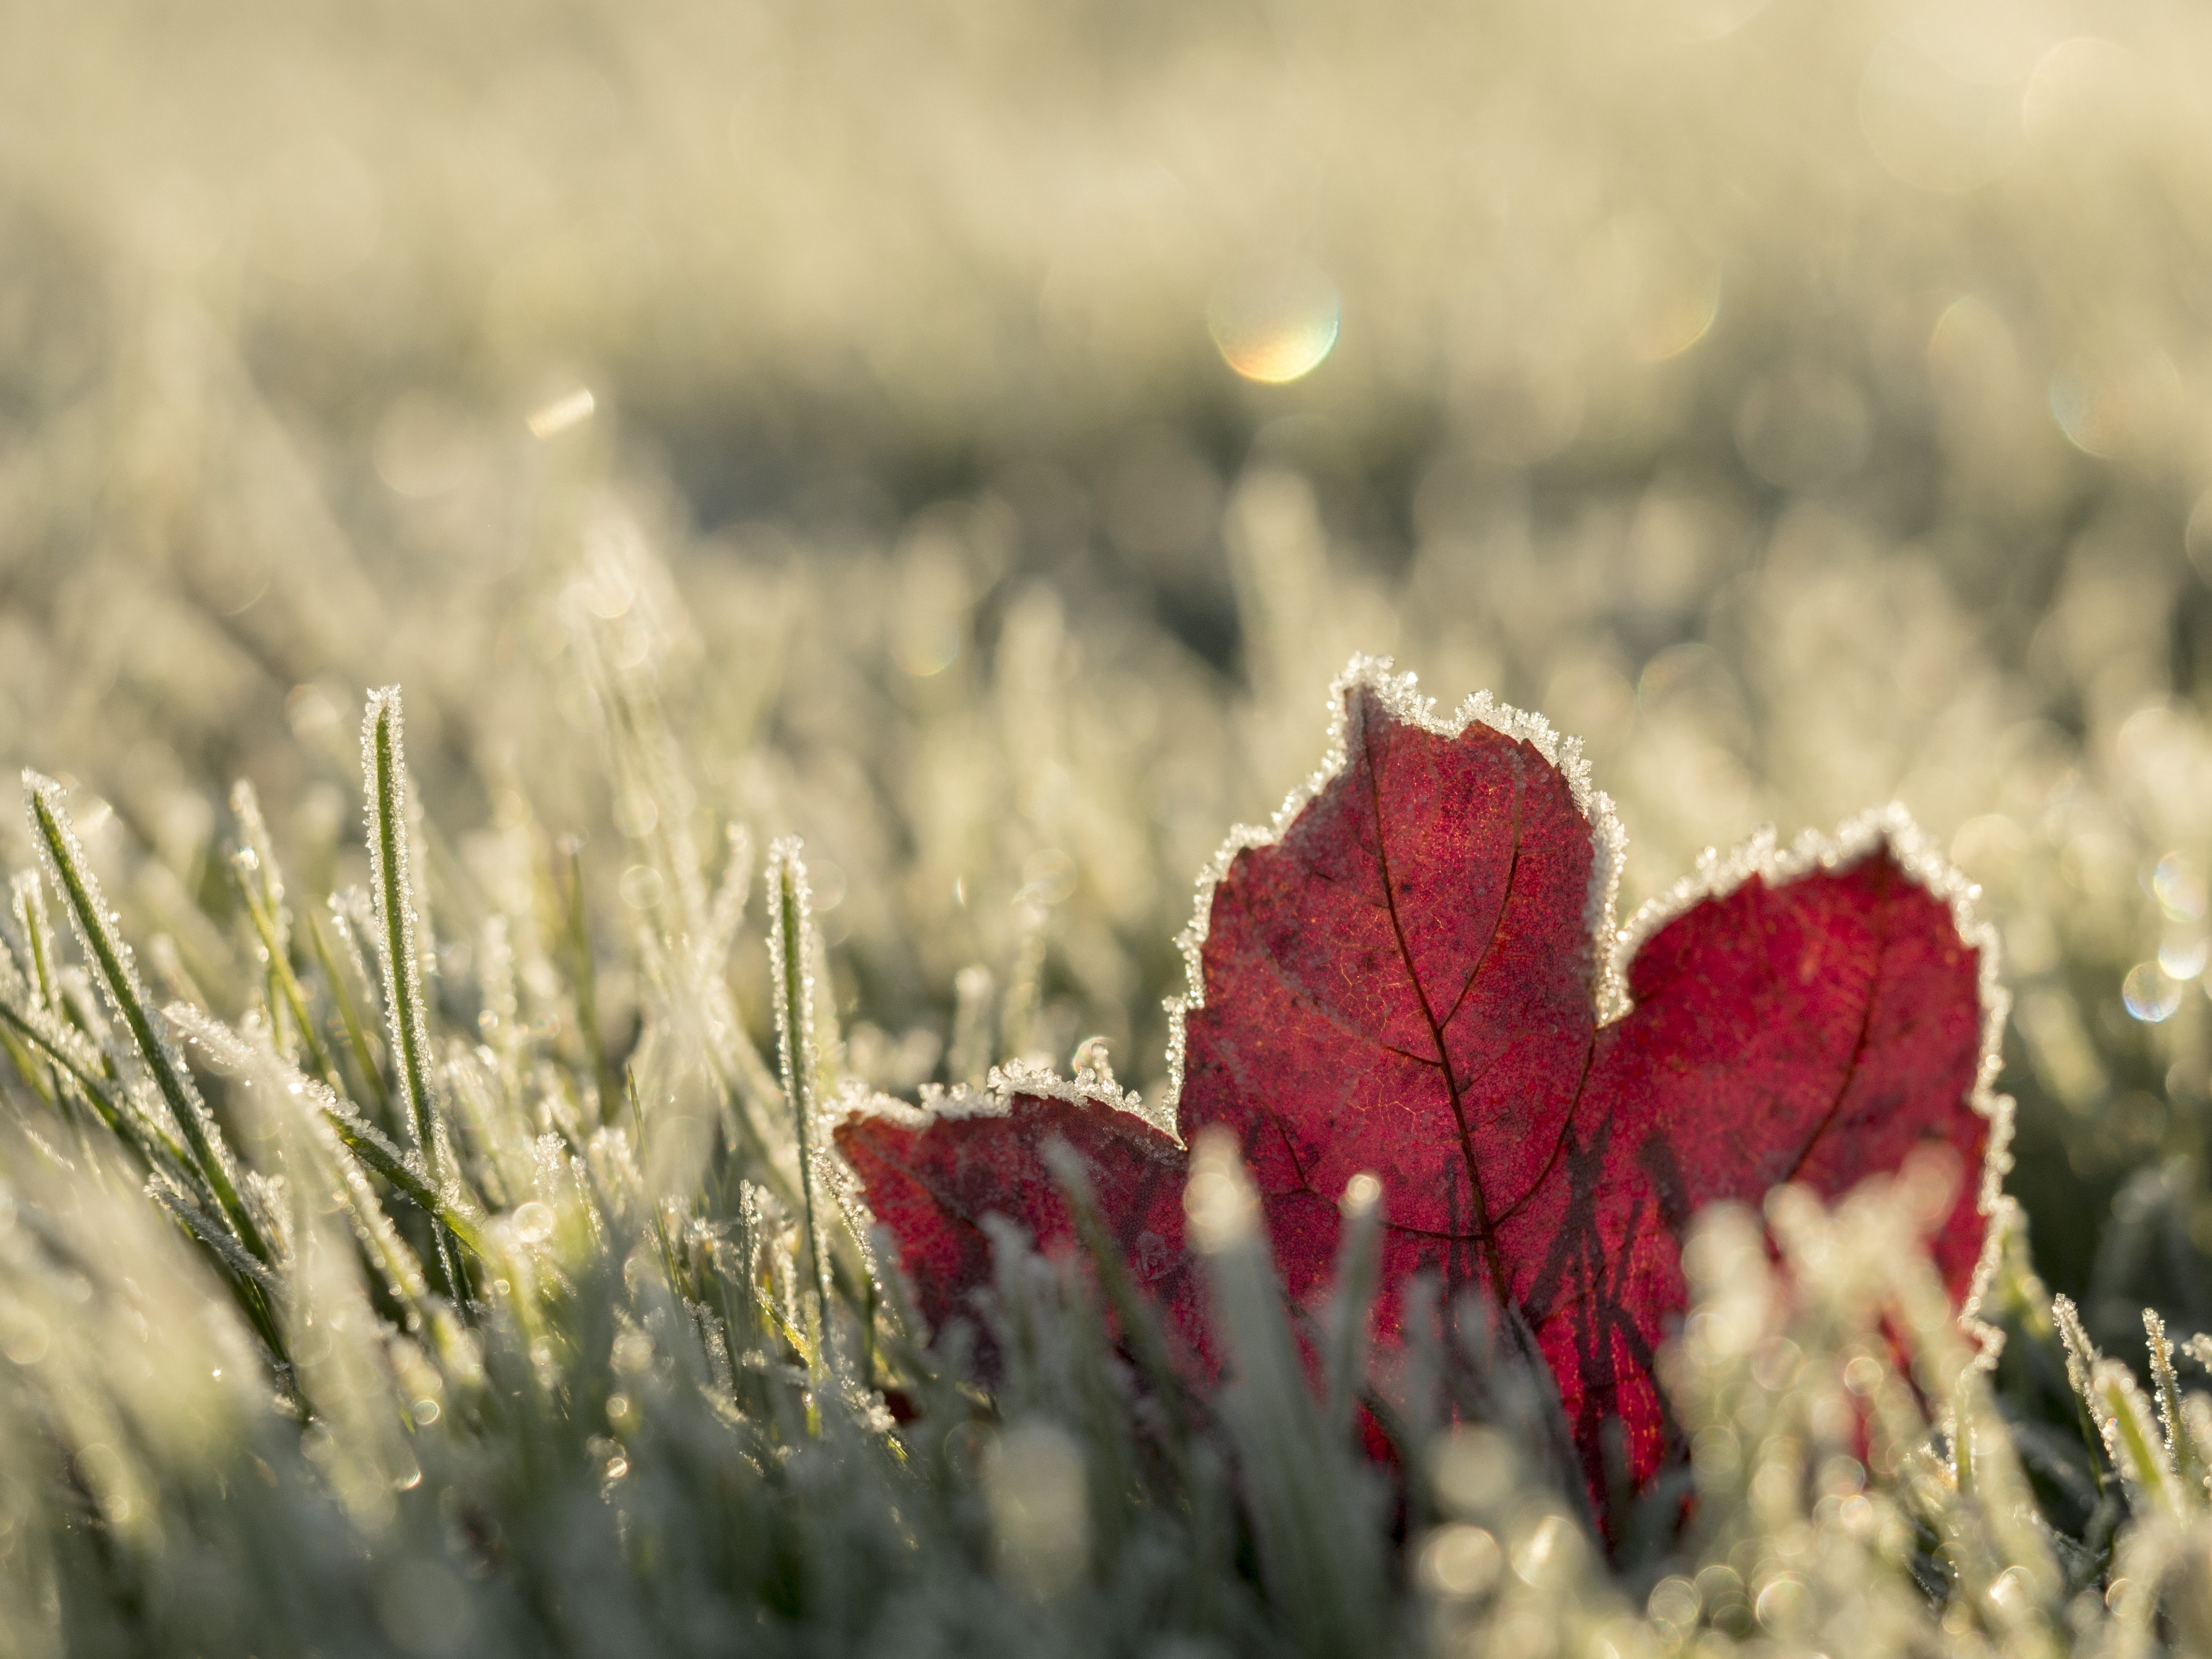 close up photo of red maple leaf on grass